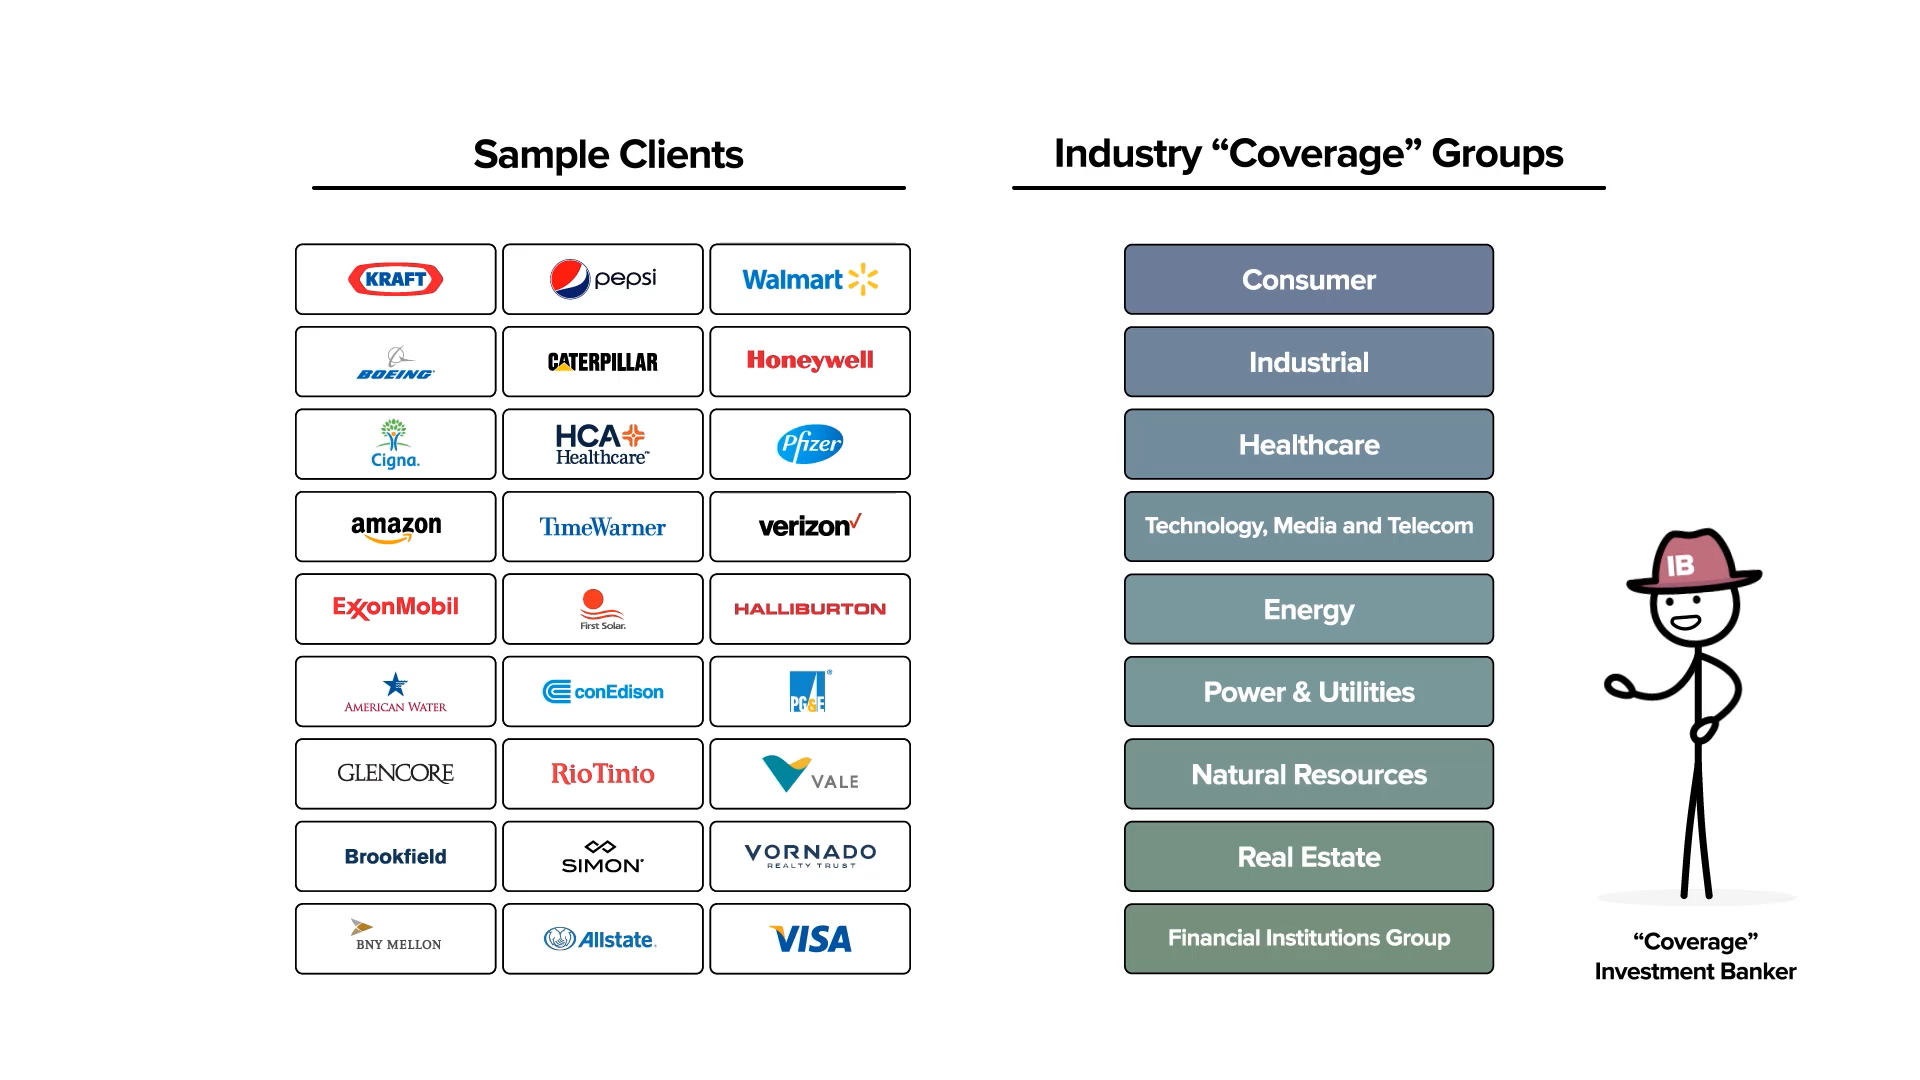 Sample clients of Industry Coverage Investment Bankers